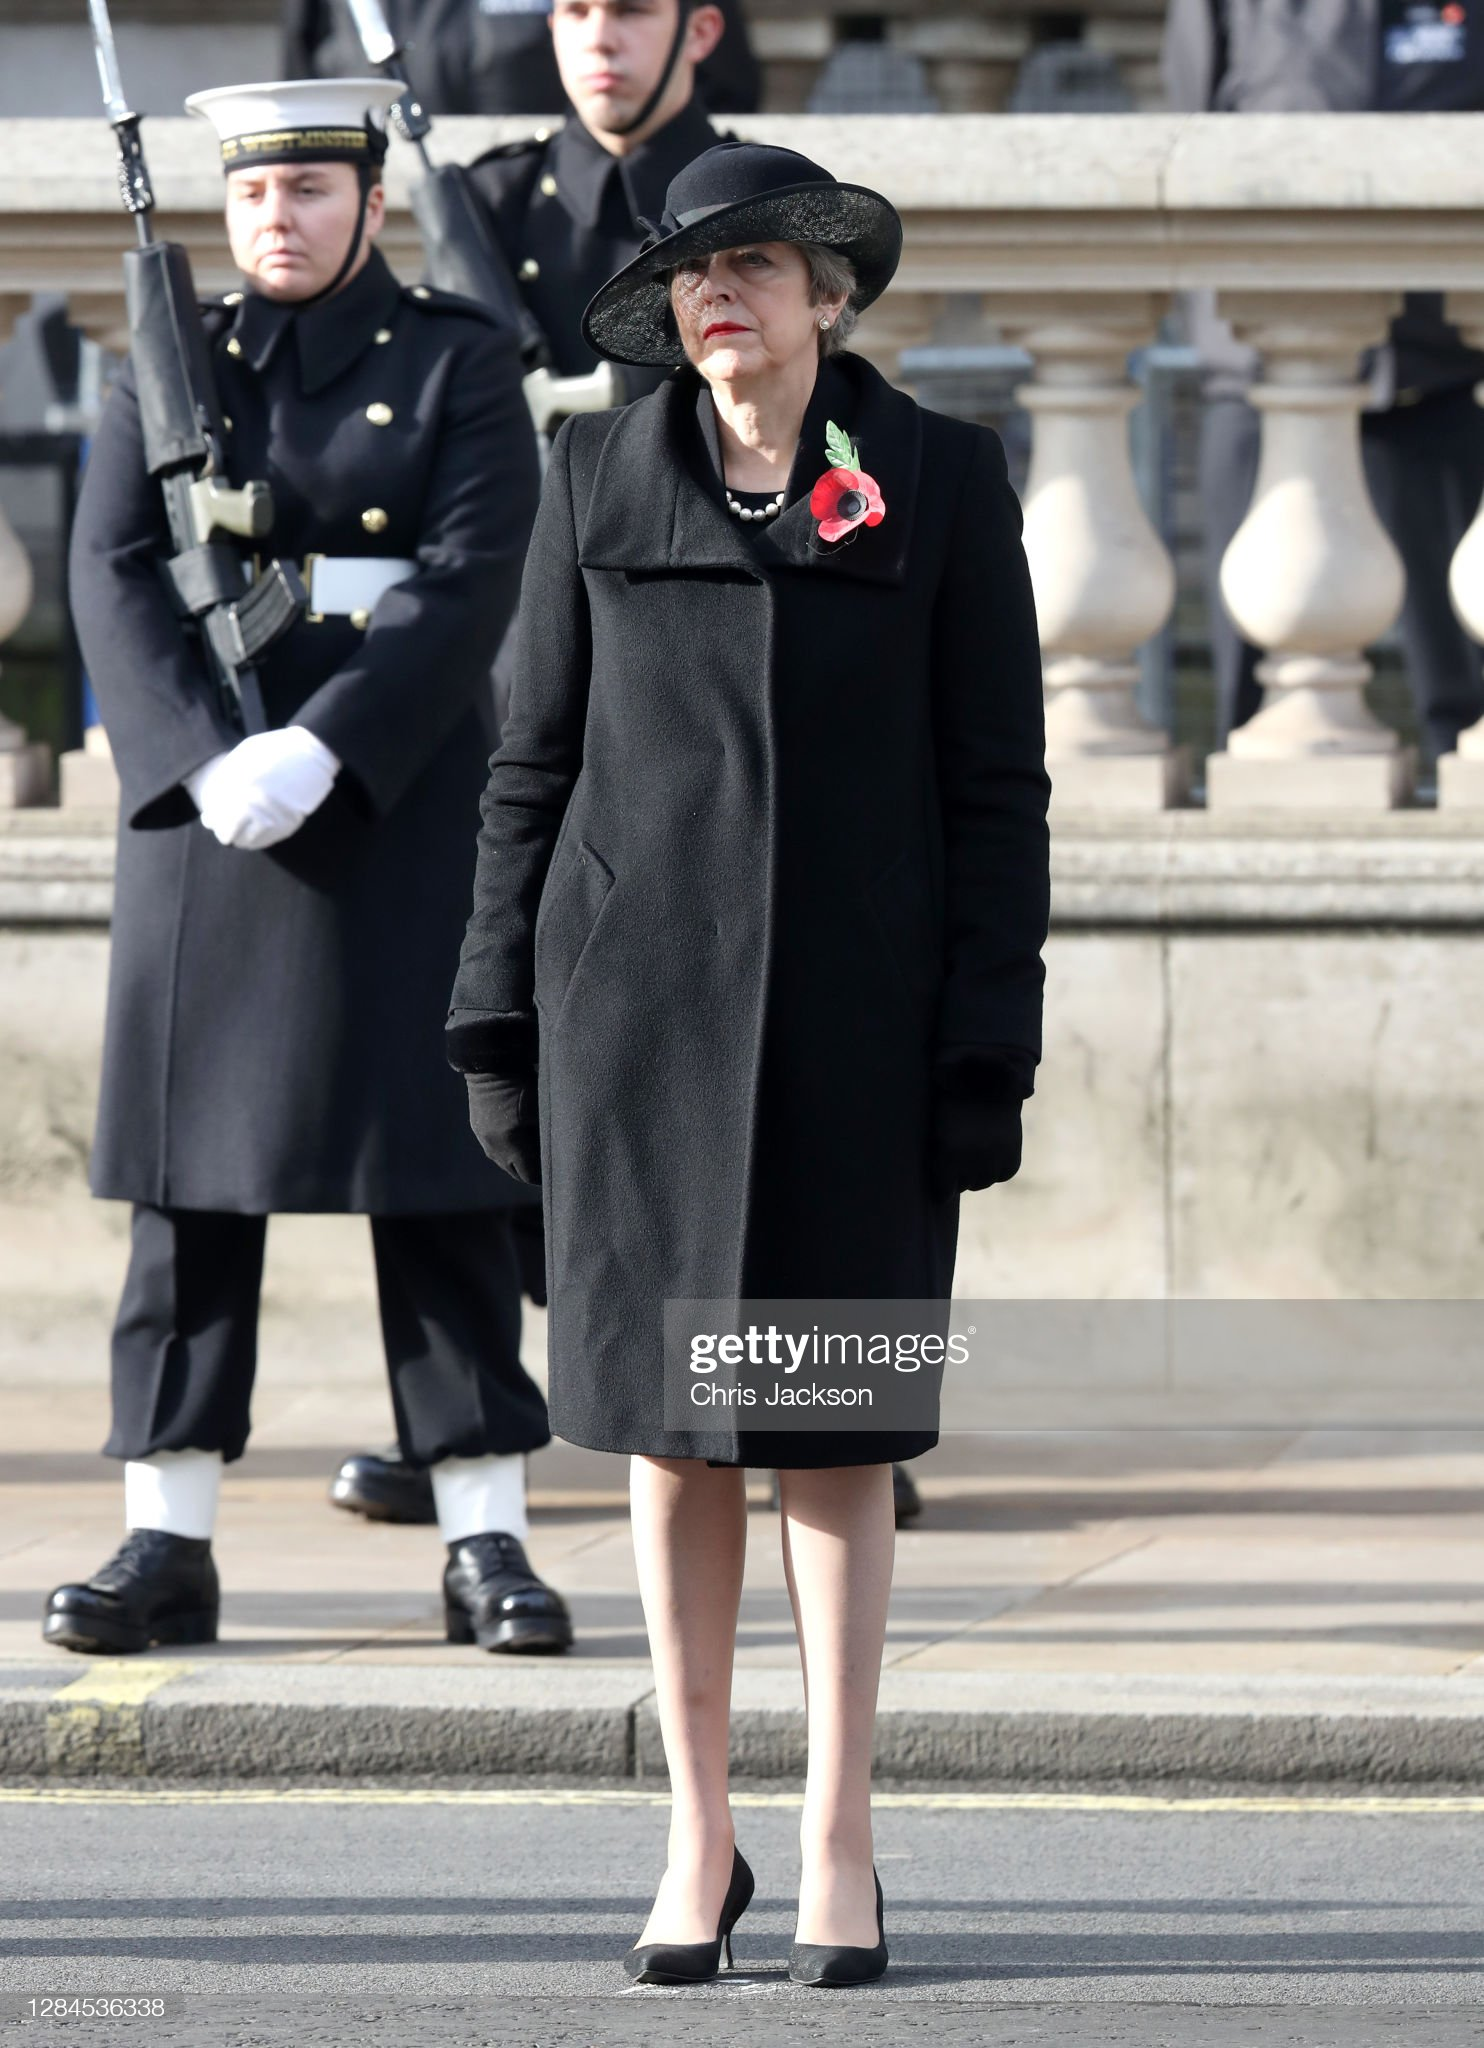 https://media.gettyimages.com/photos/former-british-prime-minister-theresa-may-during-the-national-service-picture-id1284536338?s=2048x2048